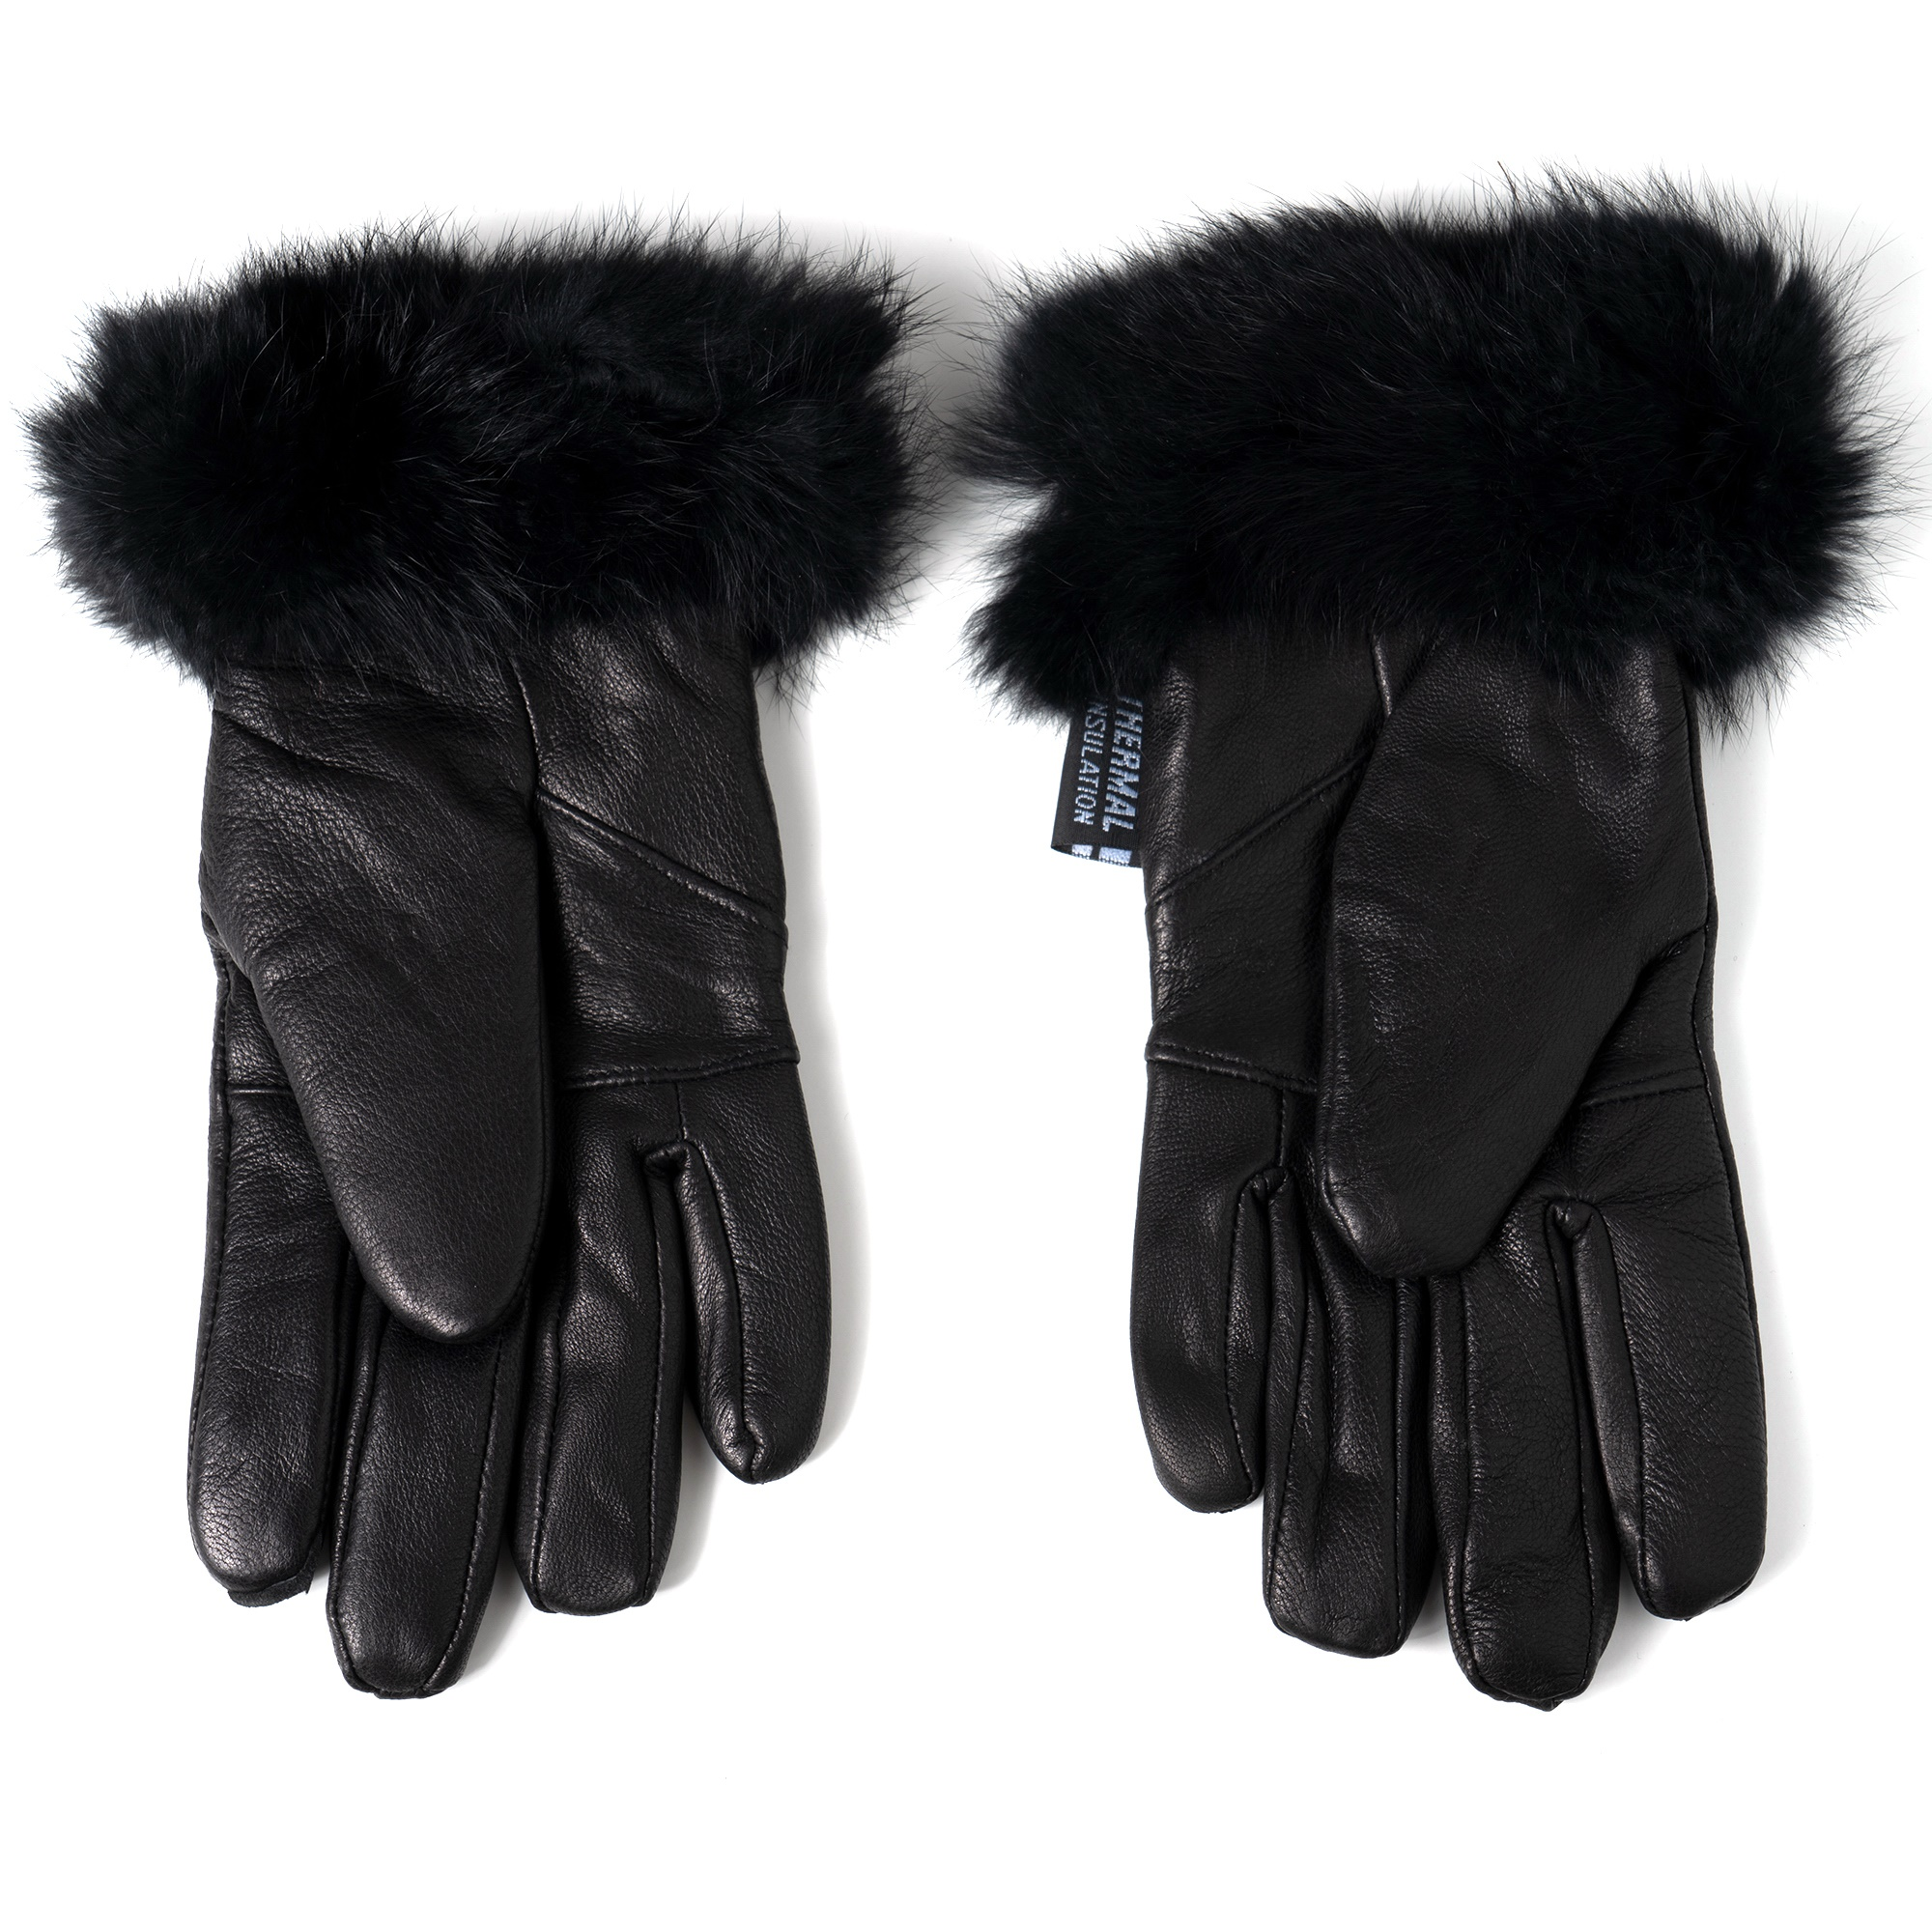 Alpine-Swiss-Womens-Dressy-Gloves-Genuine-Leather-Thermal-Lining-Fur-Trim-Cuff thumbnail 18